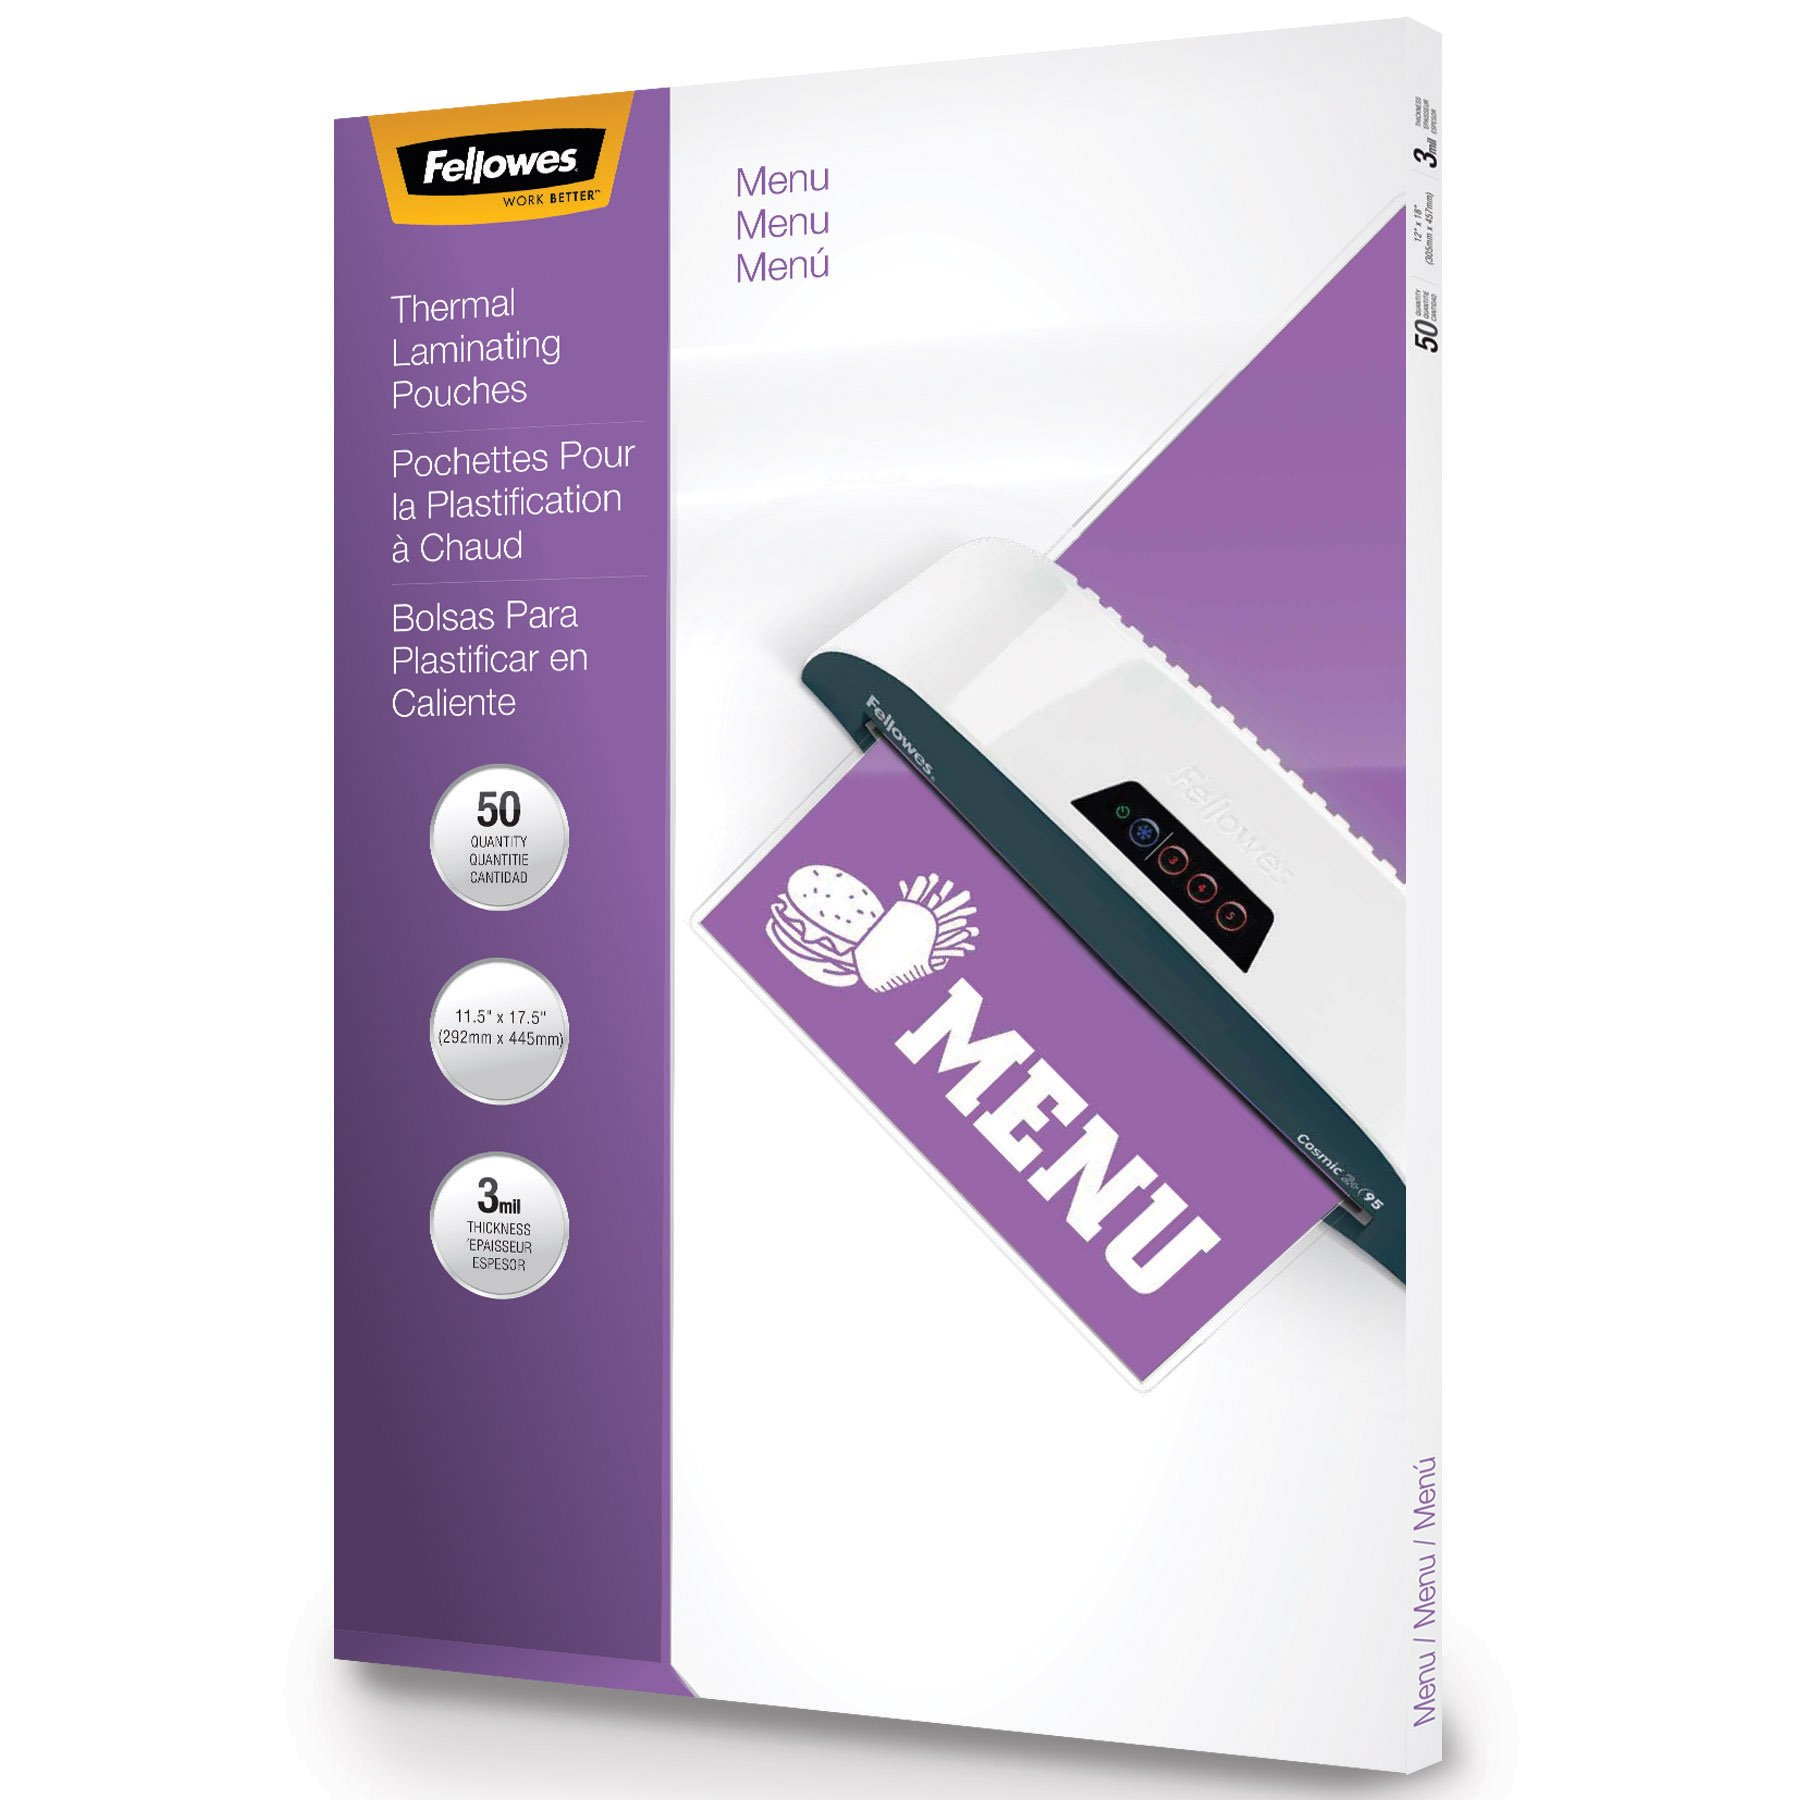 Fellowes Laminating Pouches, Thermal, Menu Size, 3 Mil, 50 Pack (52013)